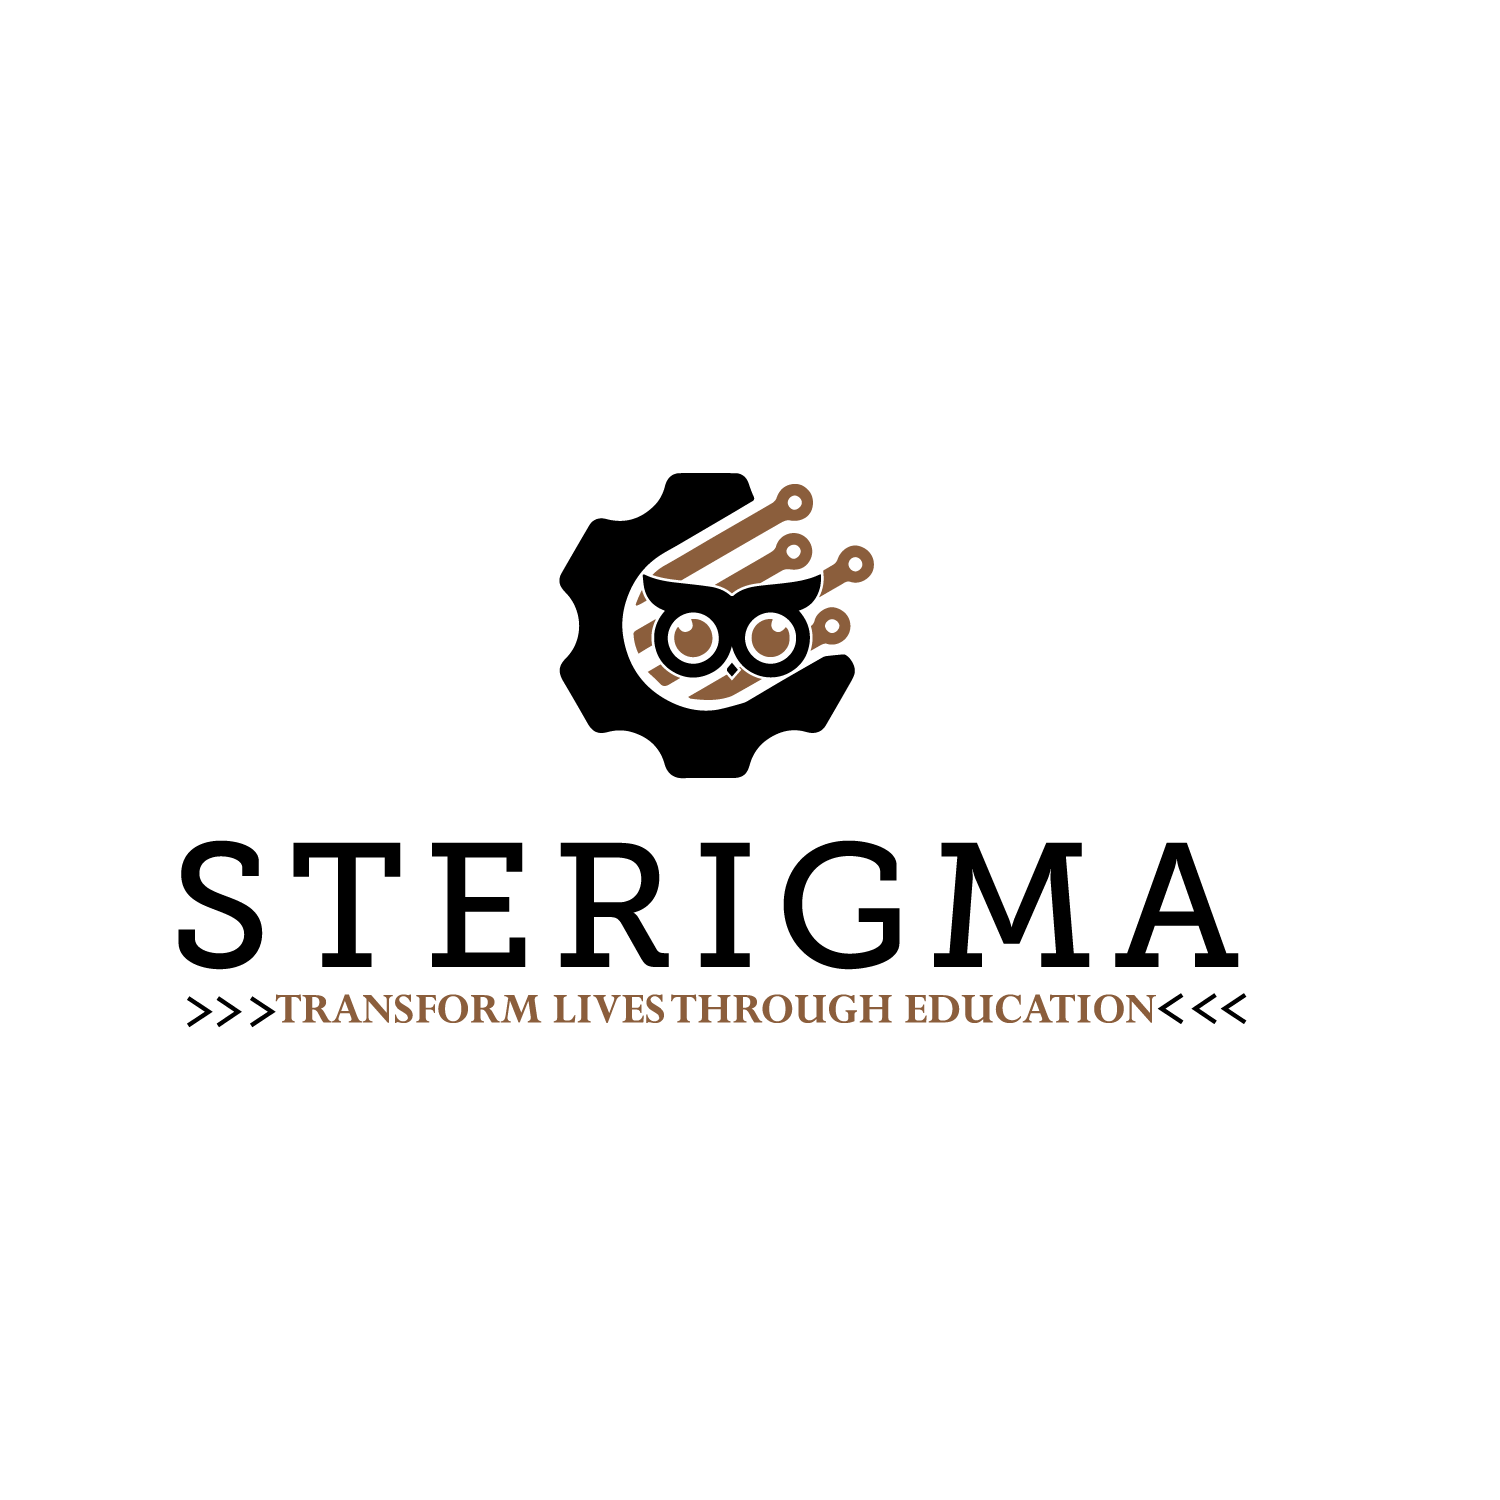 Sterigma-Transform Lives Through Education